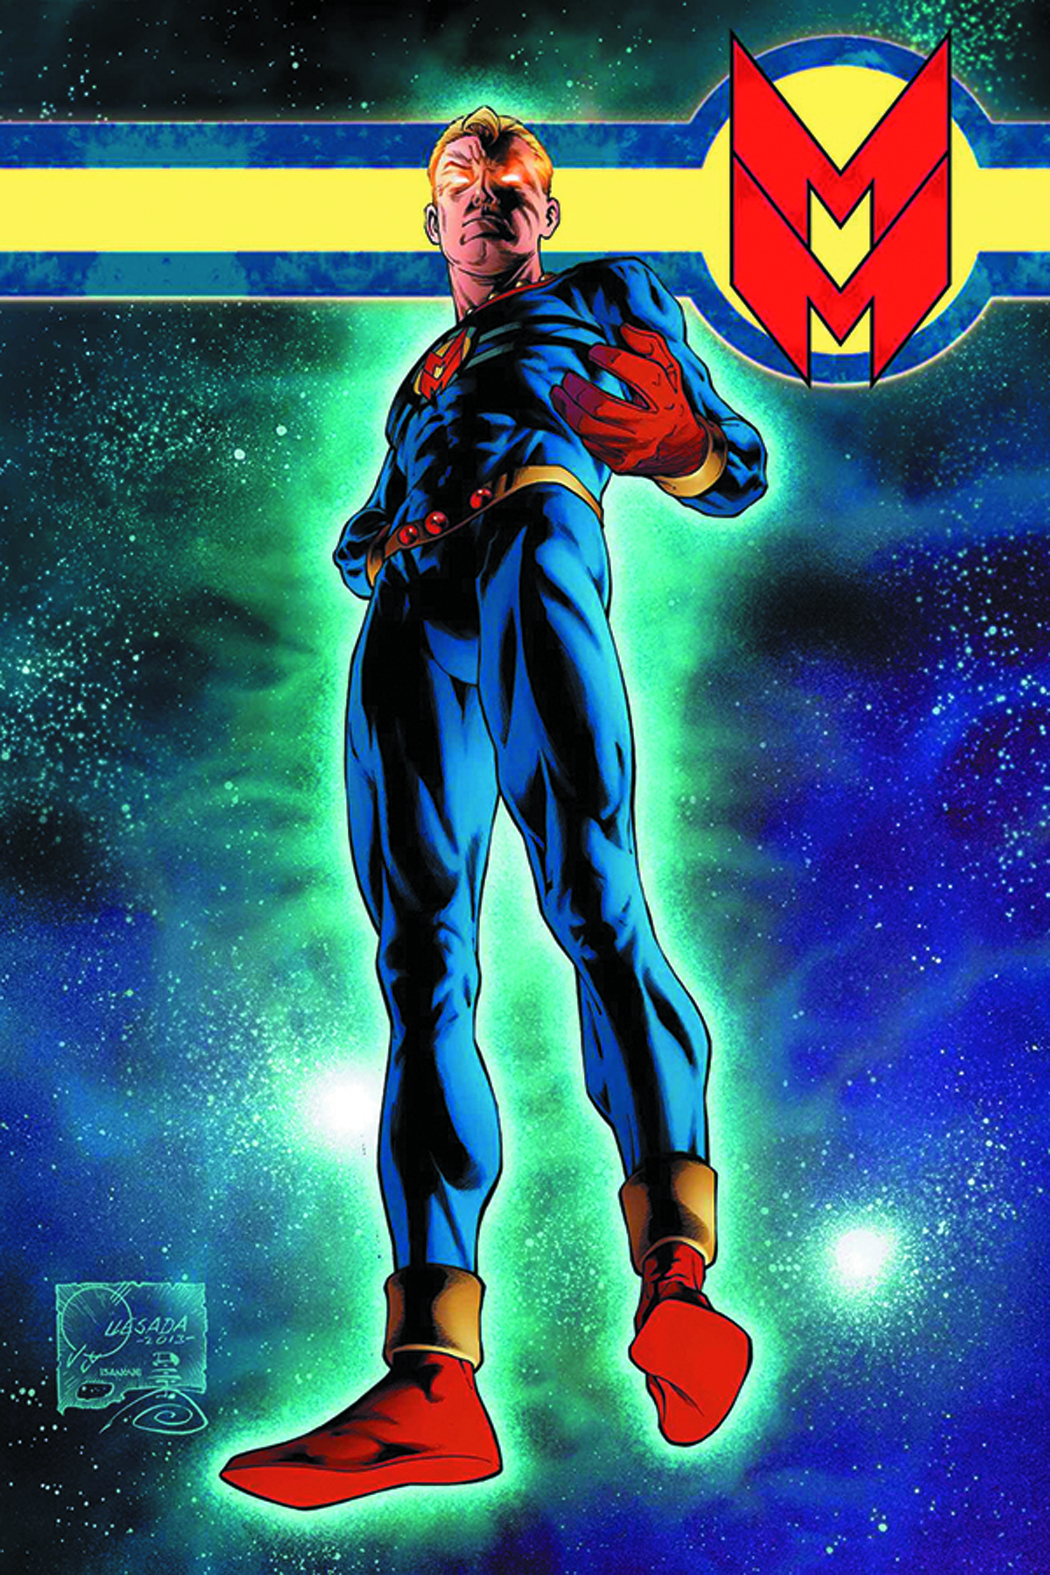 DF MIRACLEMAN #1 CGC GRADED 9.8